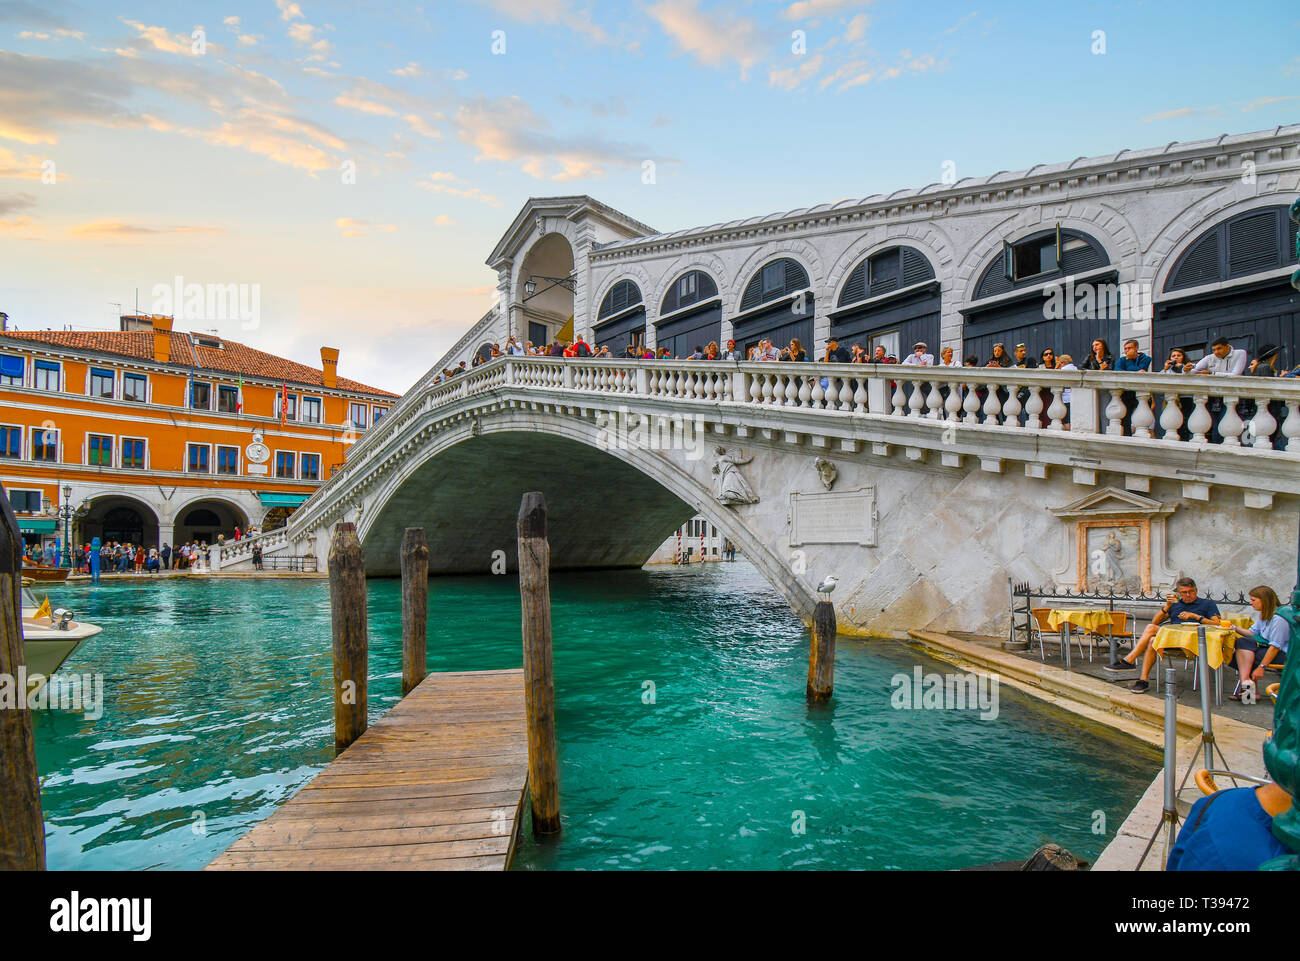 Tourists line the Rialto Bridge overlooking the Grand Canal as a sea gull perches on a pier and watches a couple dine at a cafe in Venice, Italy Stock Photo